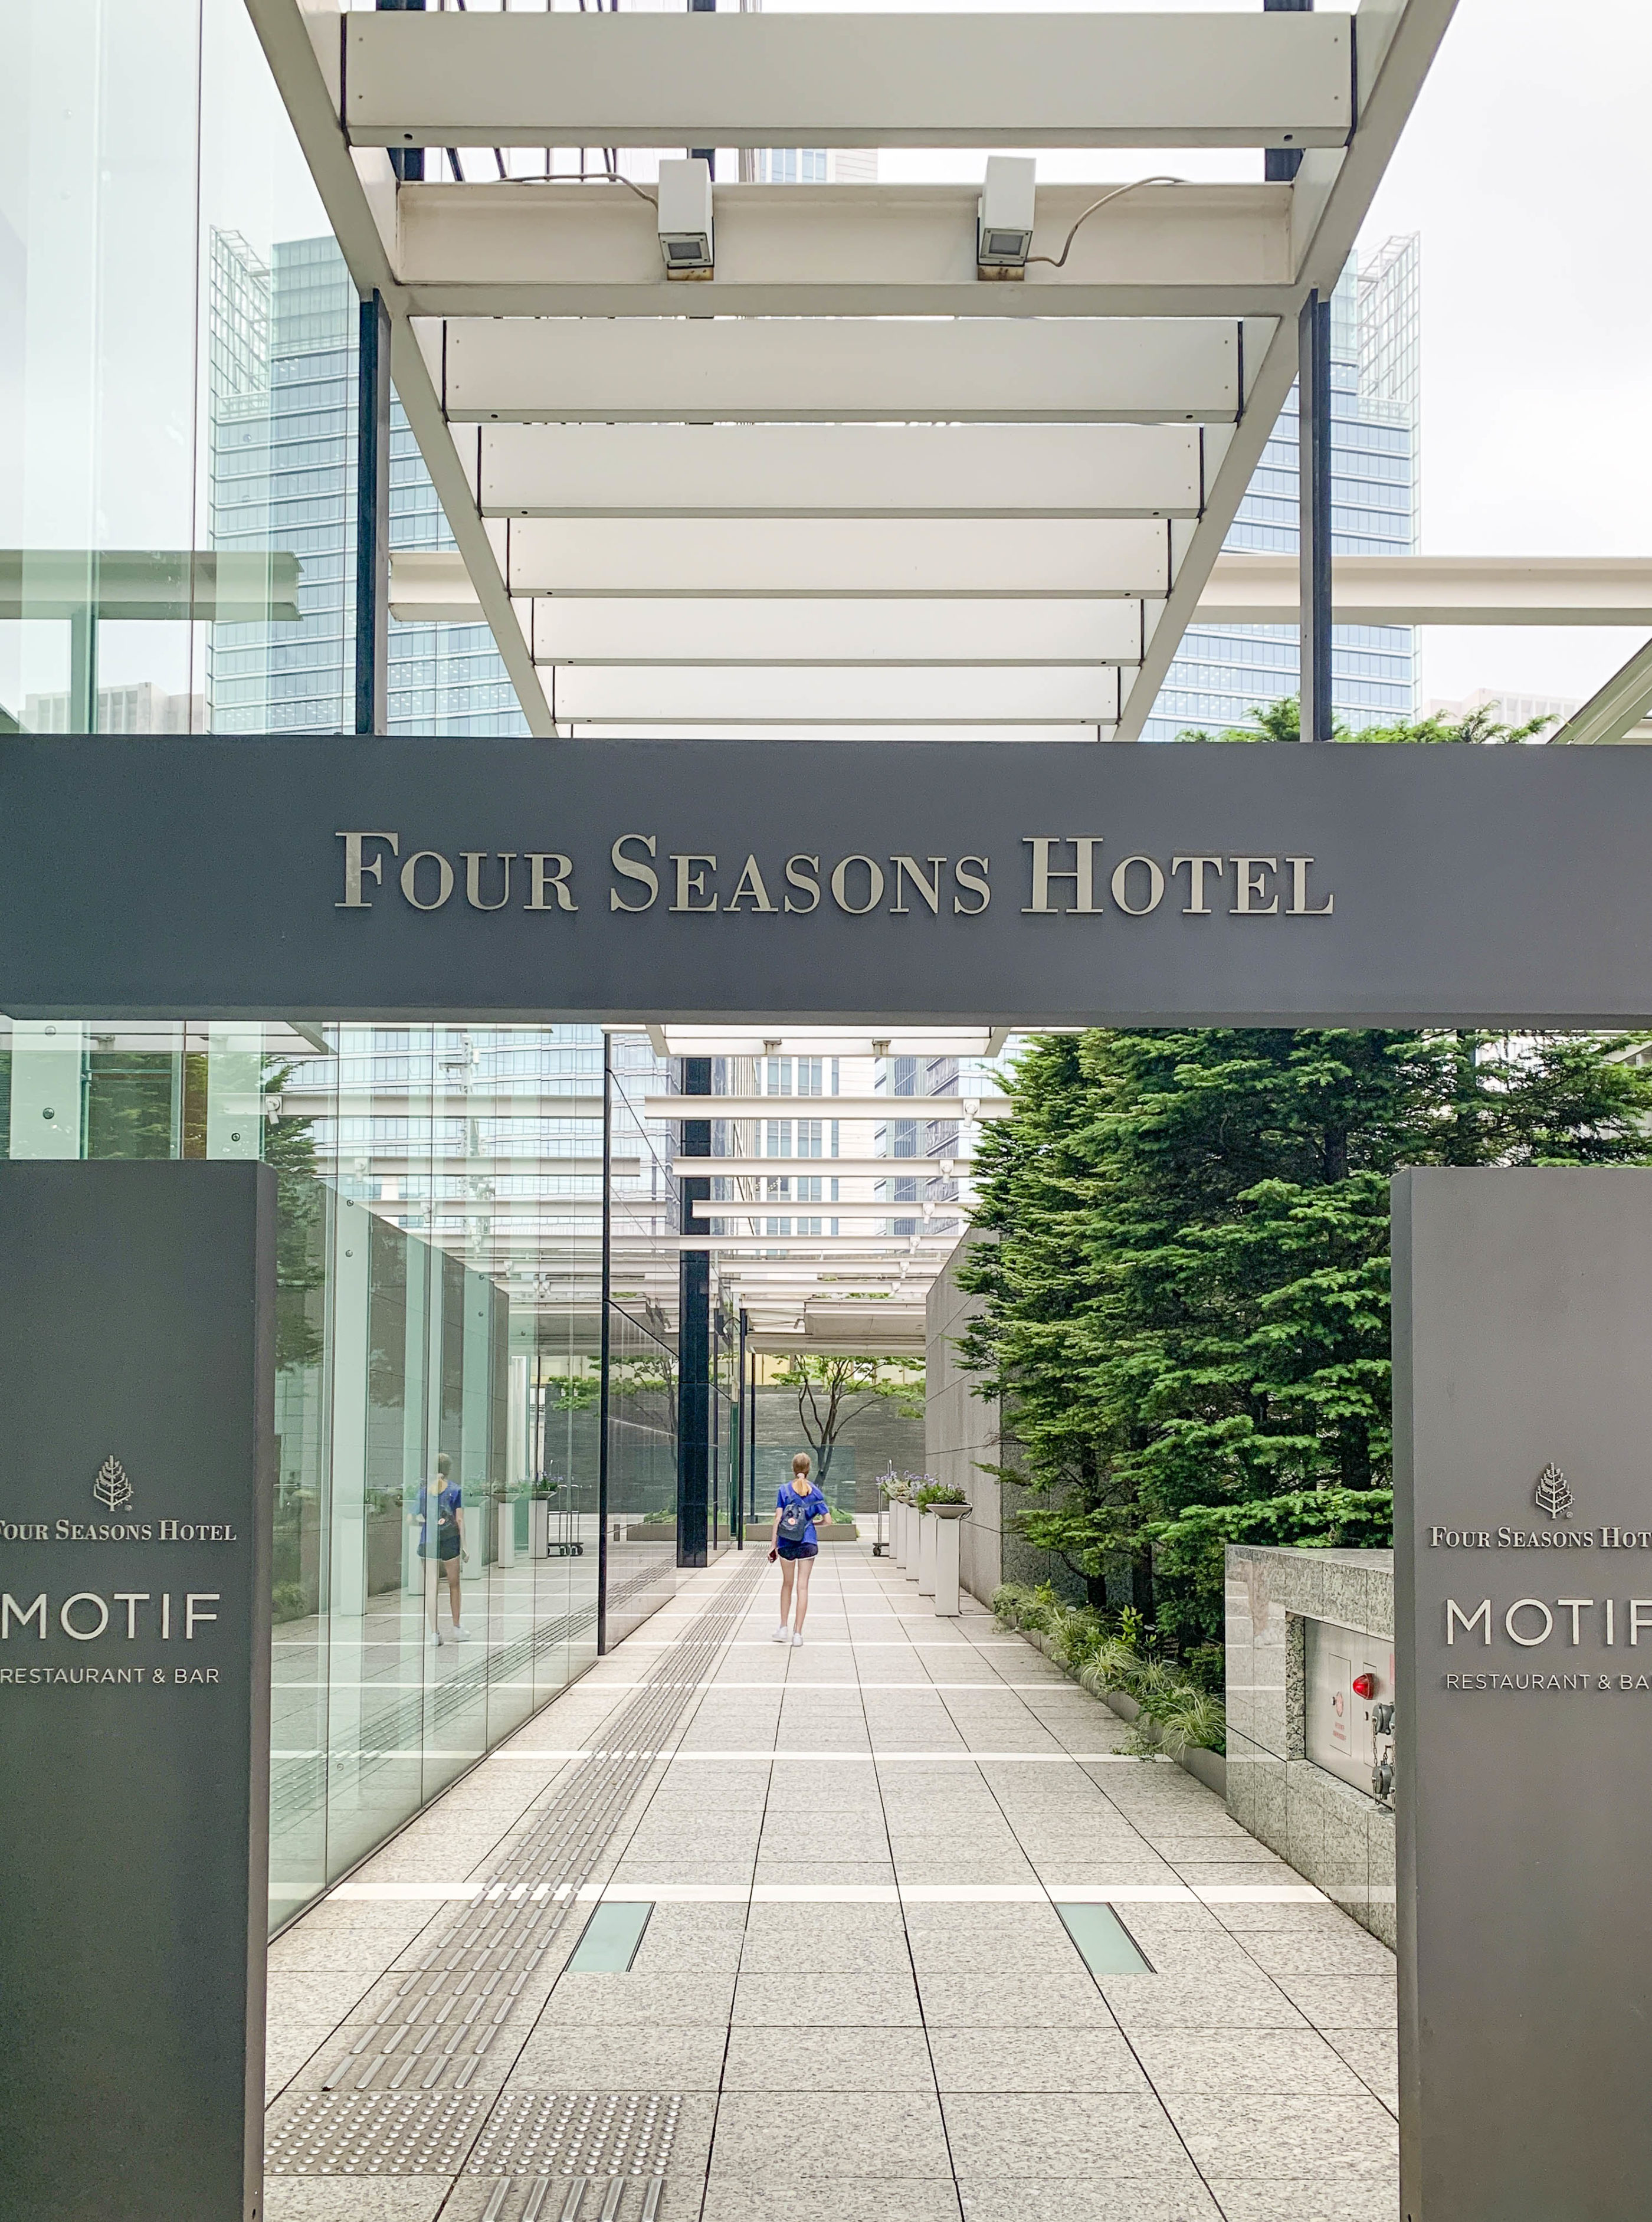 The street entrance to Four Seasons Hotel Tokyo at Marunouchi with a hotel sign.